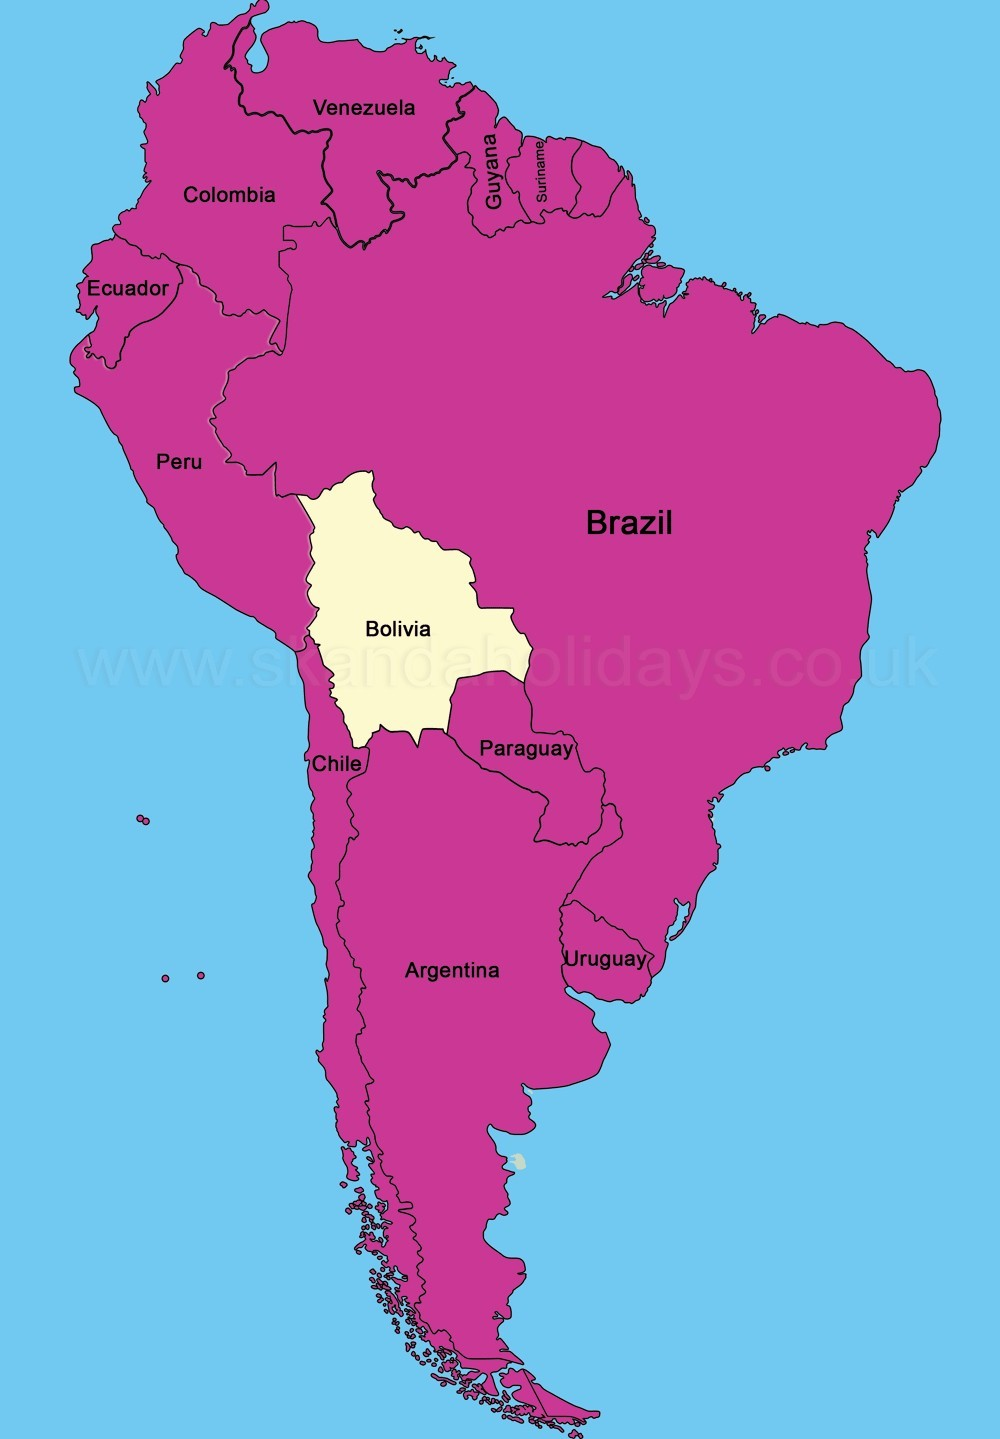 bolivia-holidays-throughout-south-america-map-in-world-maps-new-and-2-20.jpg